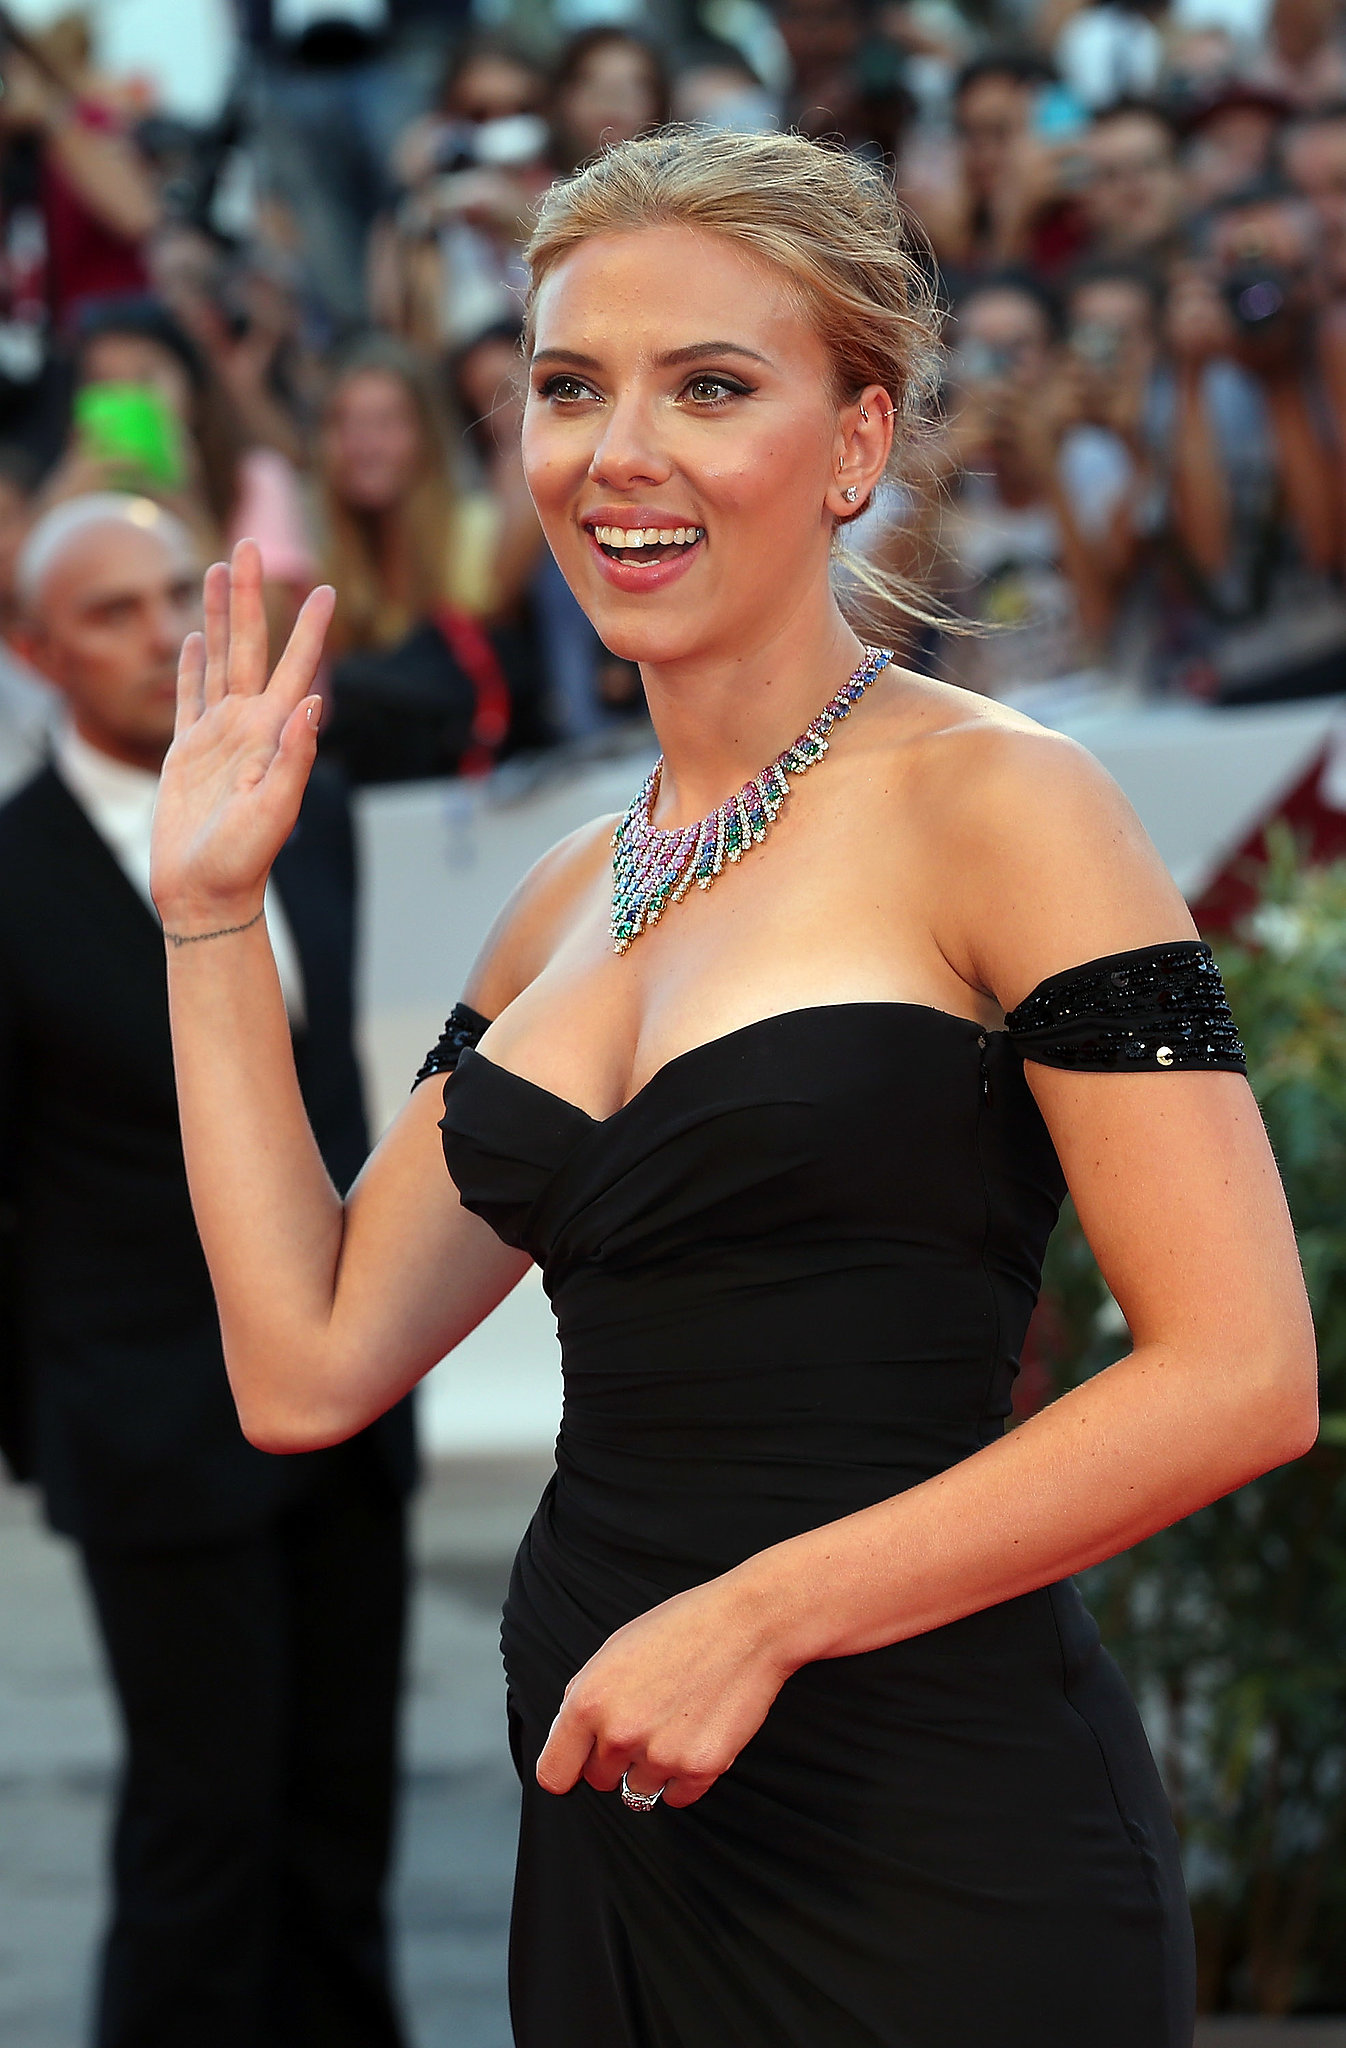 Scarlett Johansson attended the premiere of Under the Skin